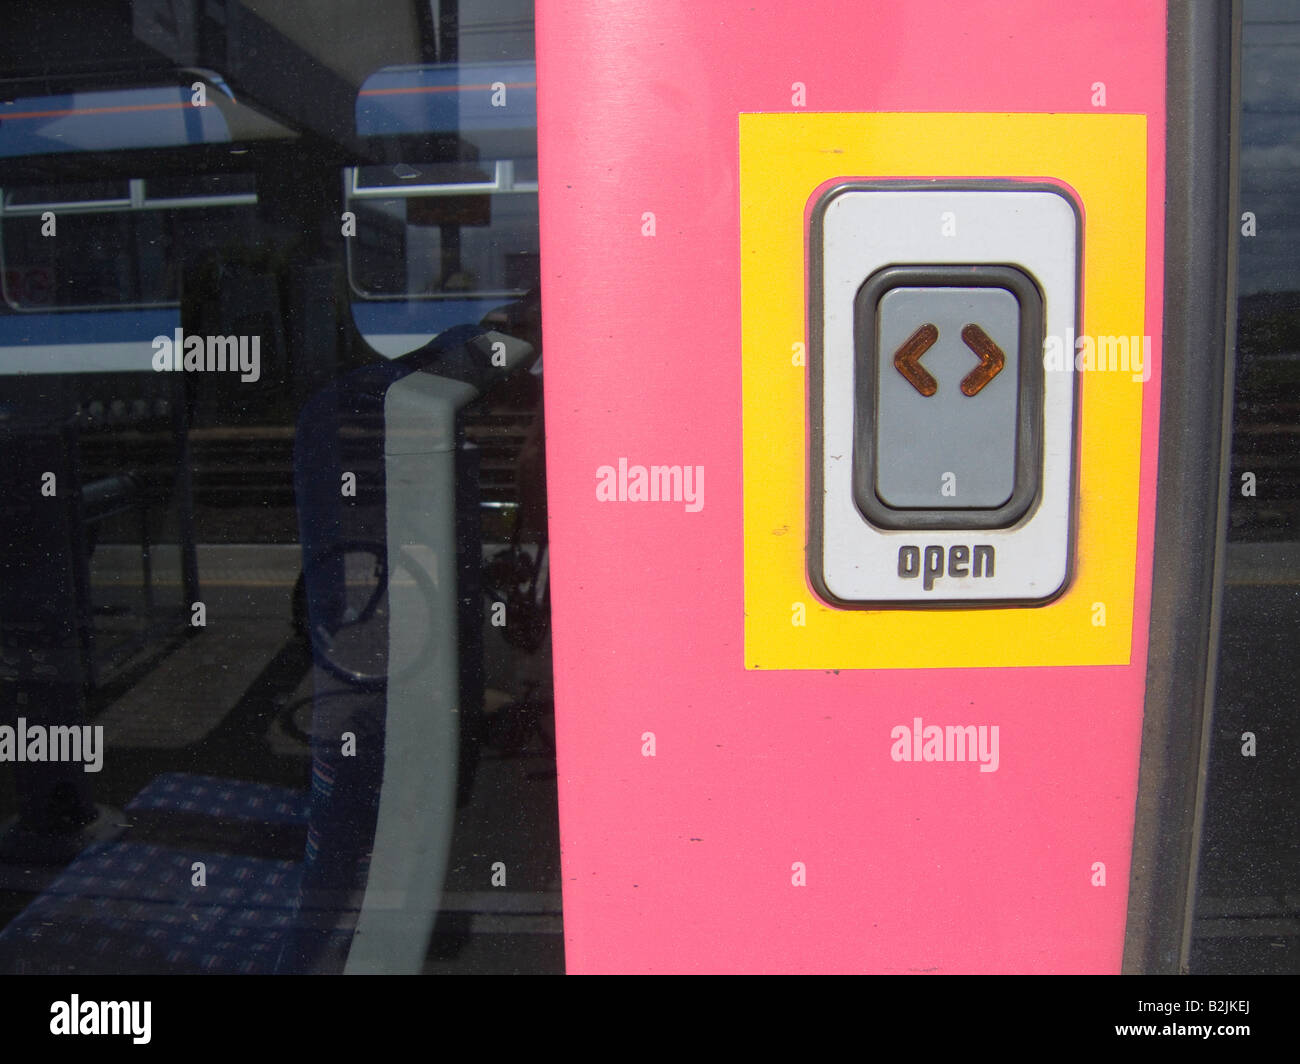 The open button on a British Train - Stock Image & Train Door Button Stock Photos u0026 Train Door Button Stock Images - Alamy